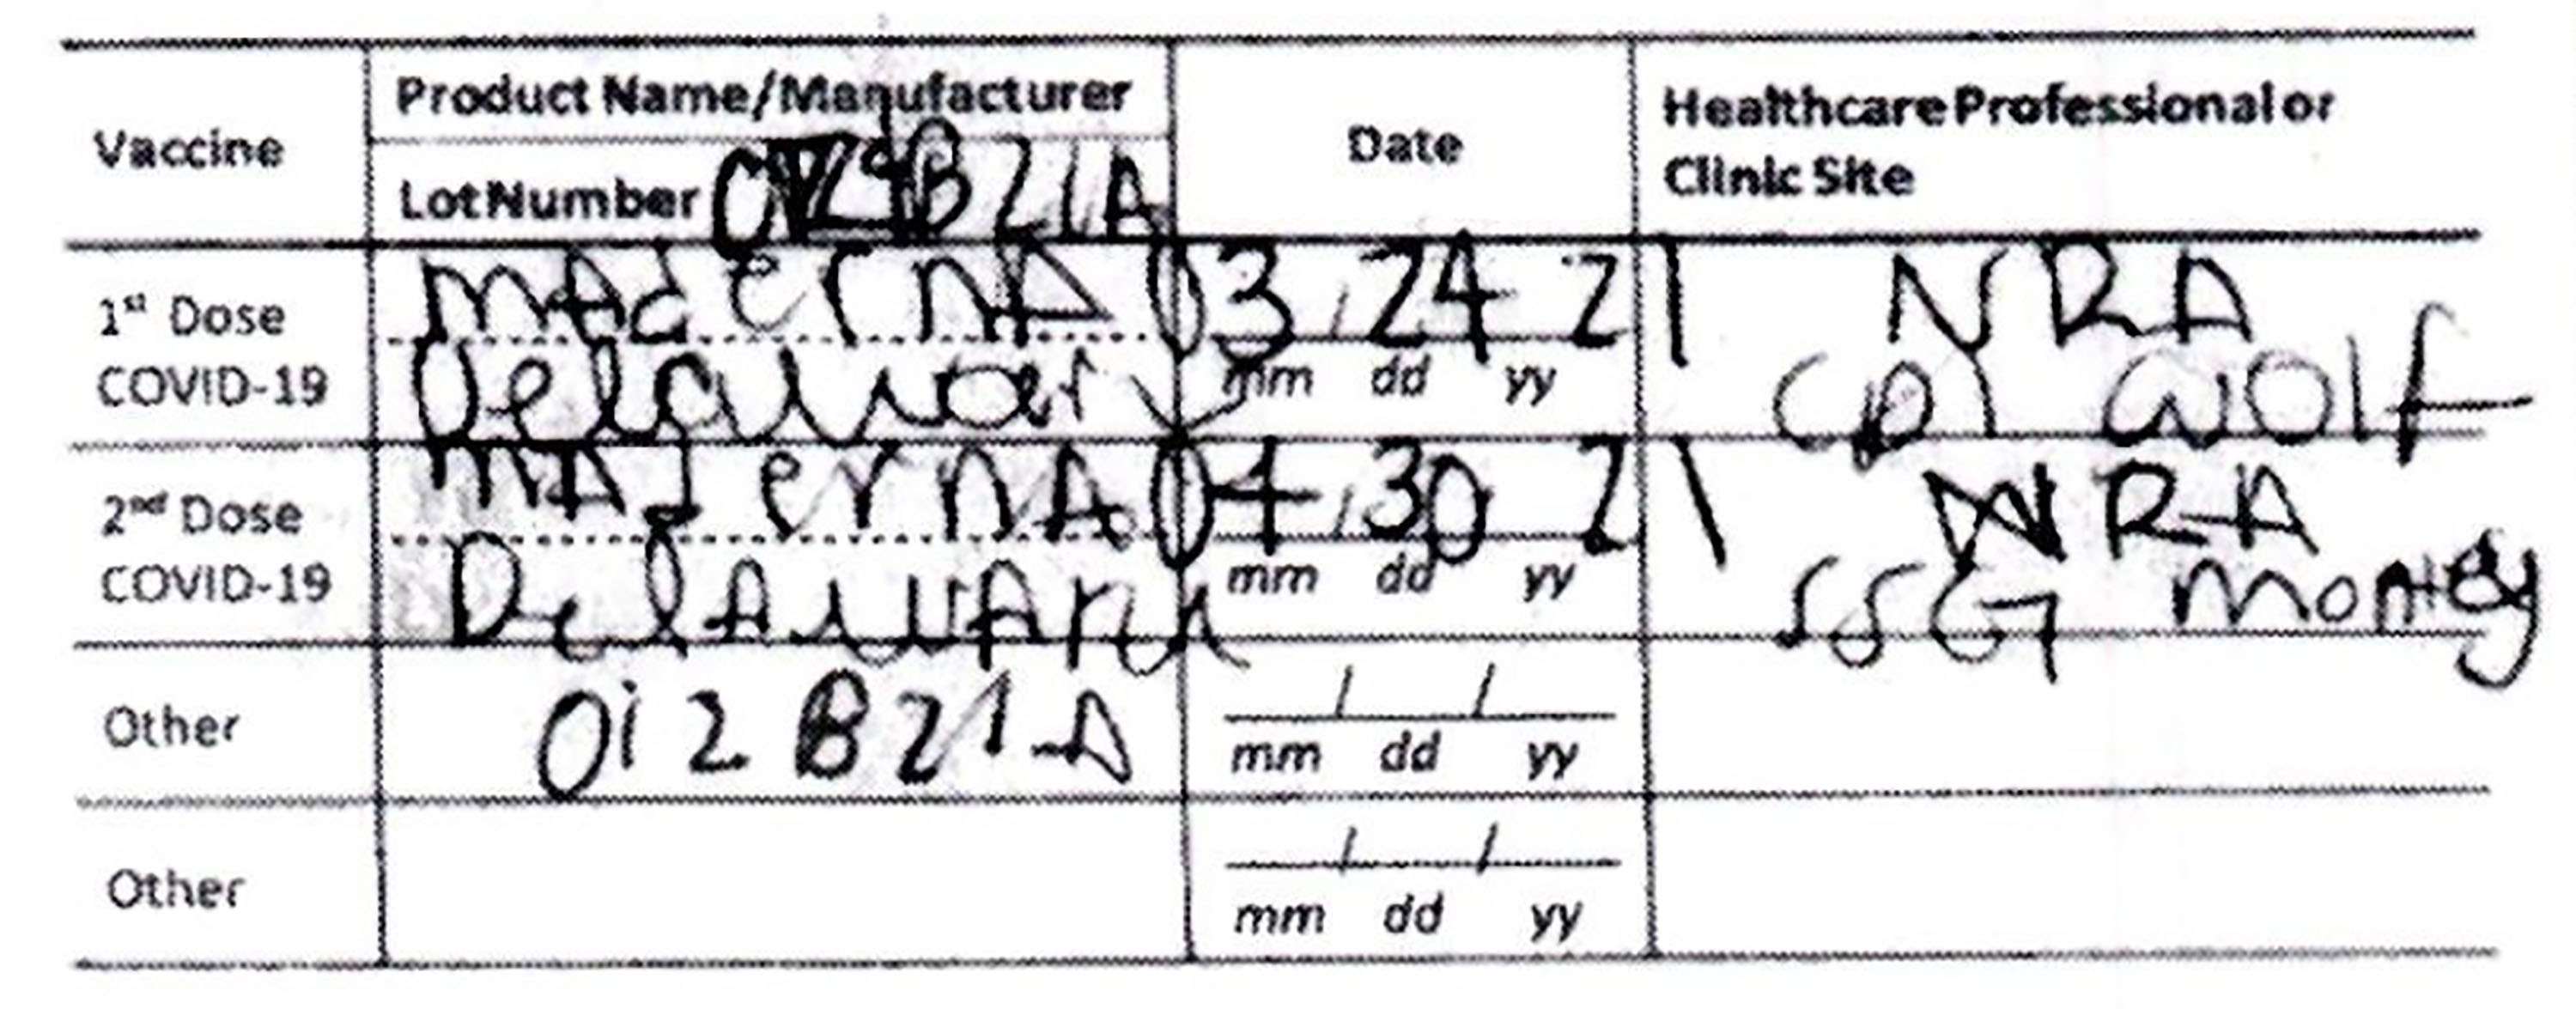 This document provided by the Hawaii Attorney General's Office shows a fake COVID-19 Vaccination Record Card from an Illinois woman visiting Hawaii.